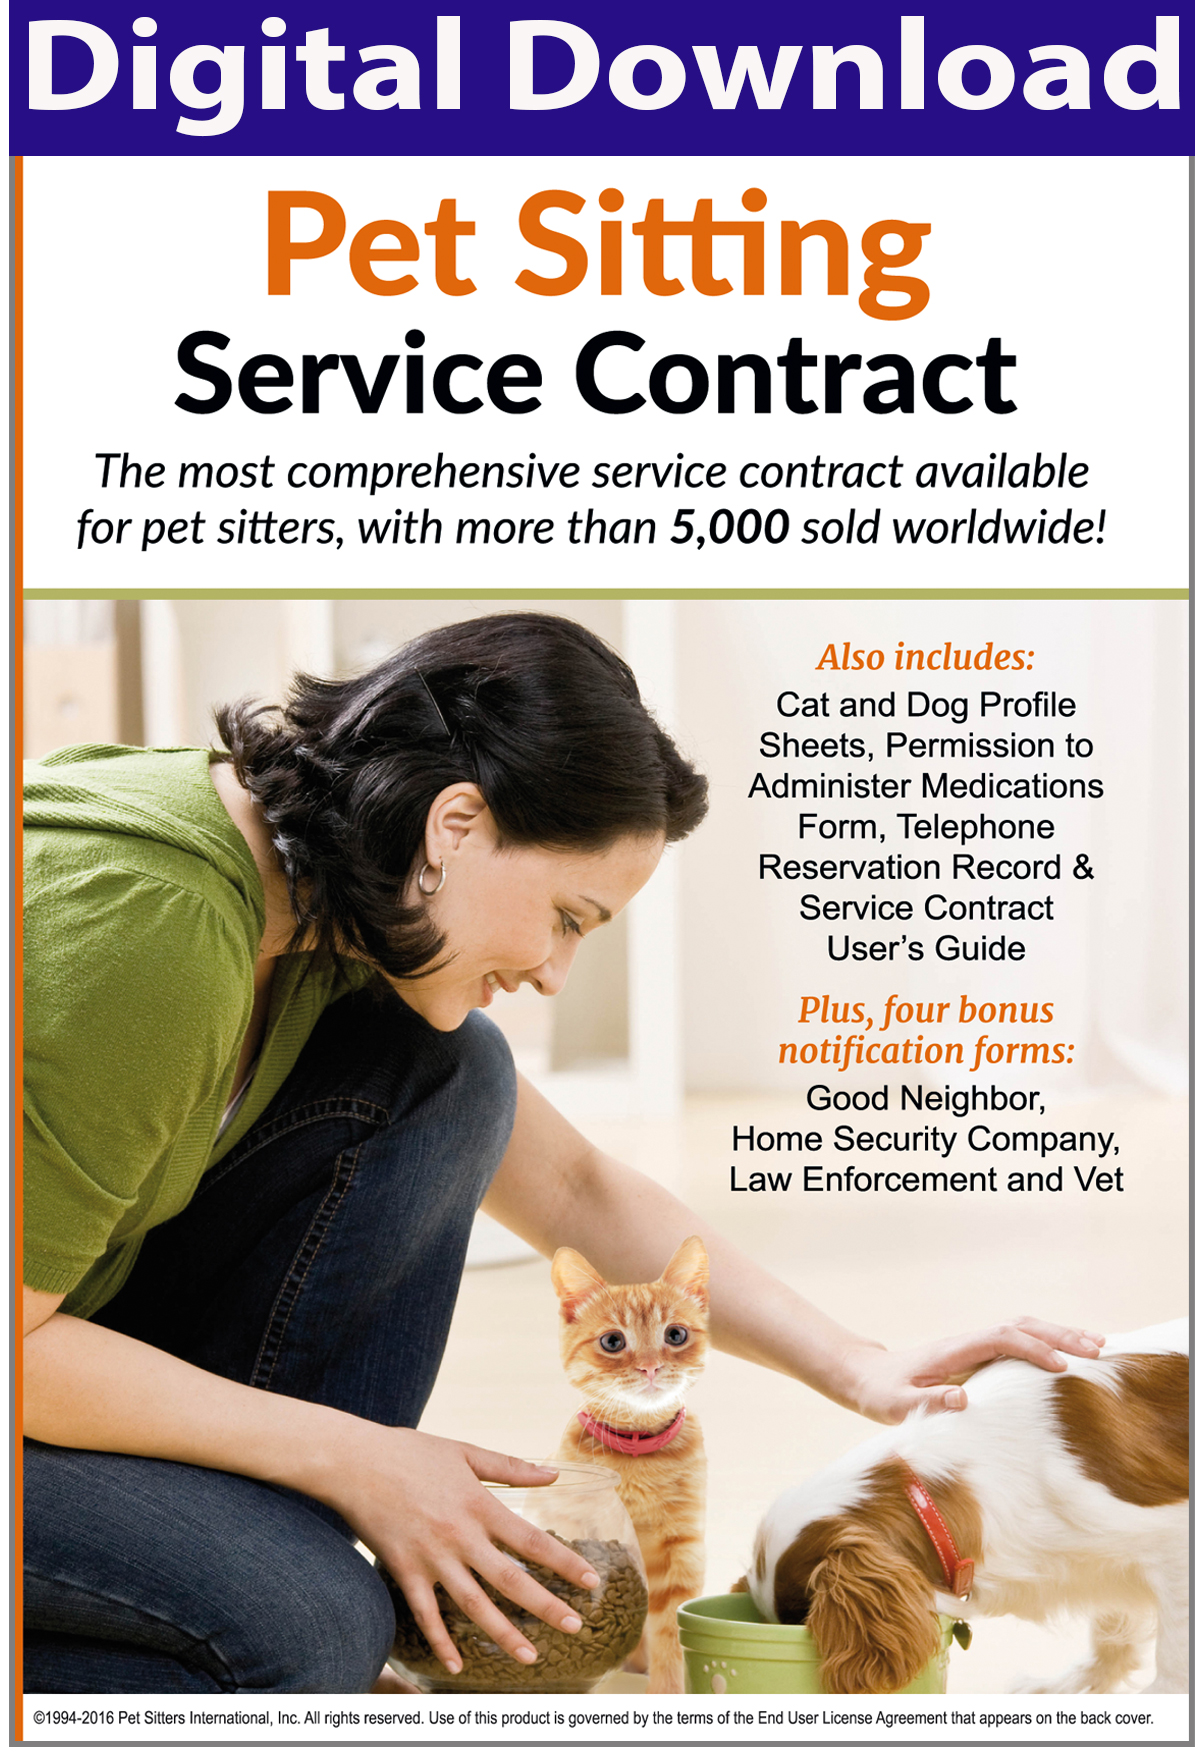 join pet sitters international with this special offer